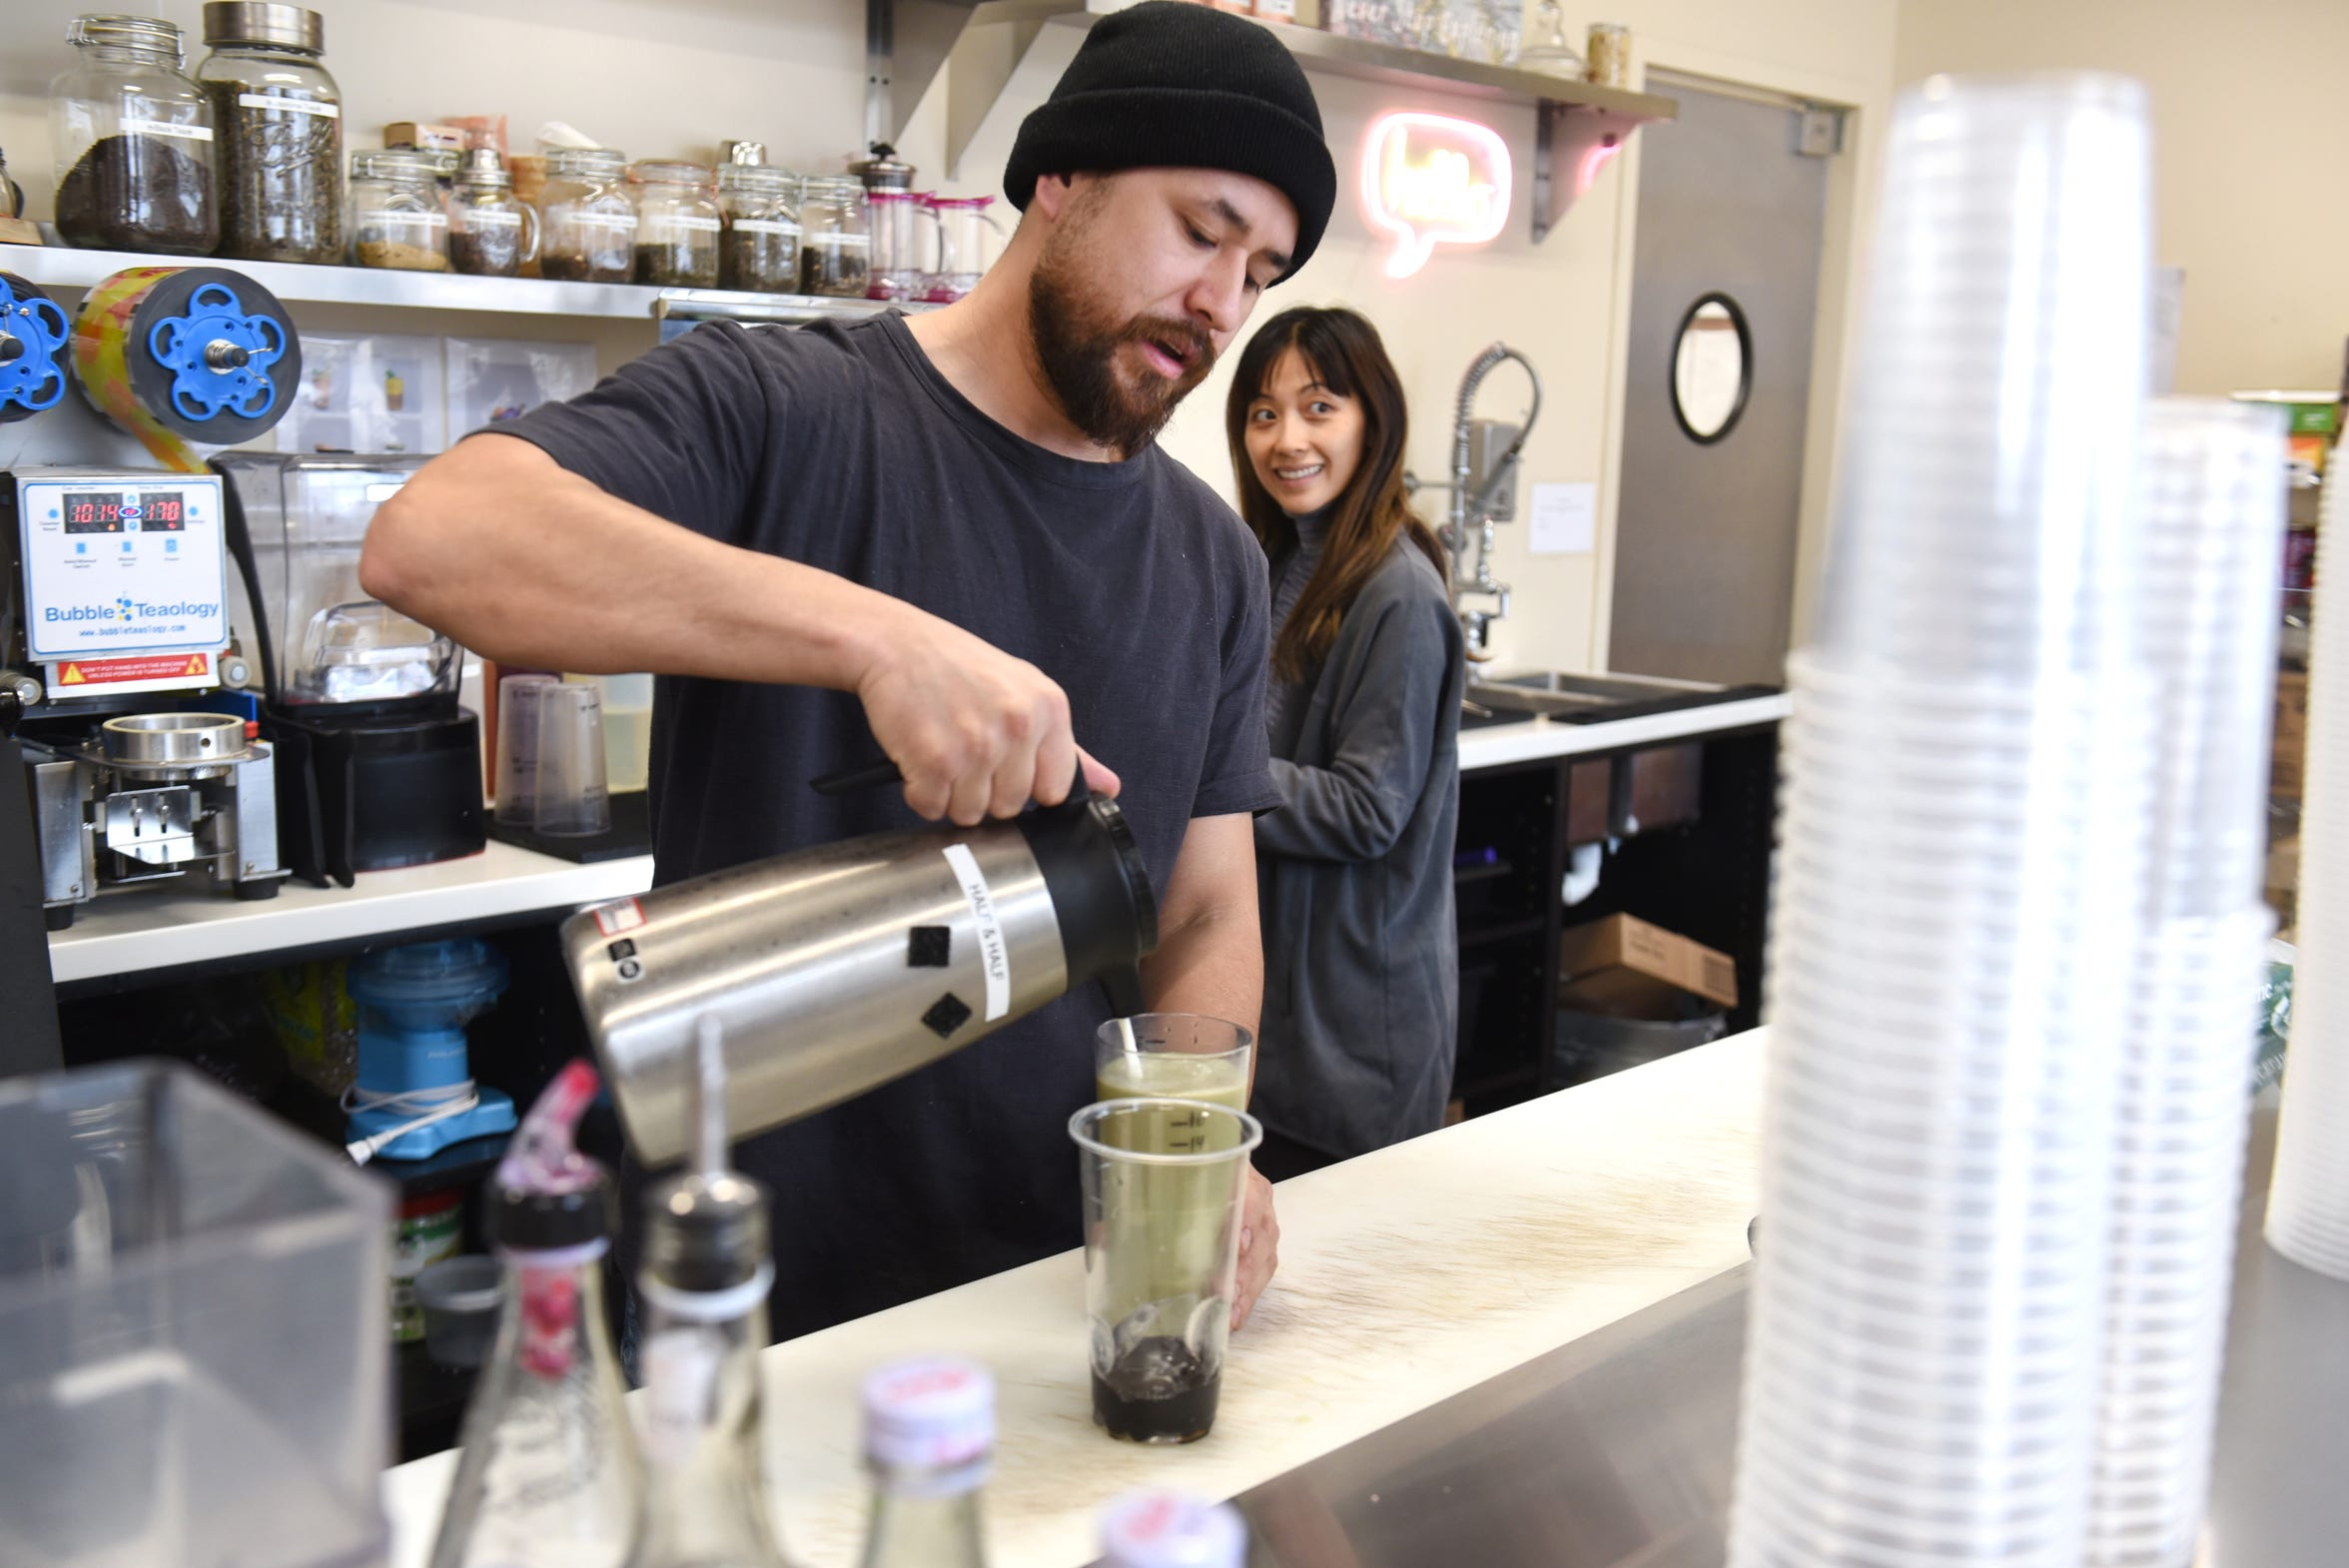 Cedric Lee (left) and his wife Gowhnou, owner of Tou & Mai, make a honey dew sweet boba drink on Wednesday, February 5, 2019 at the midtown Detroit store.